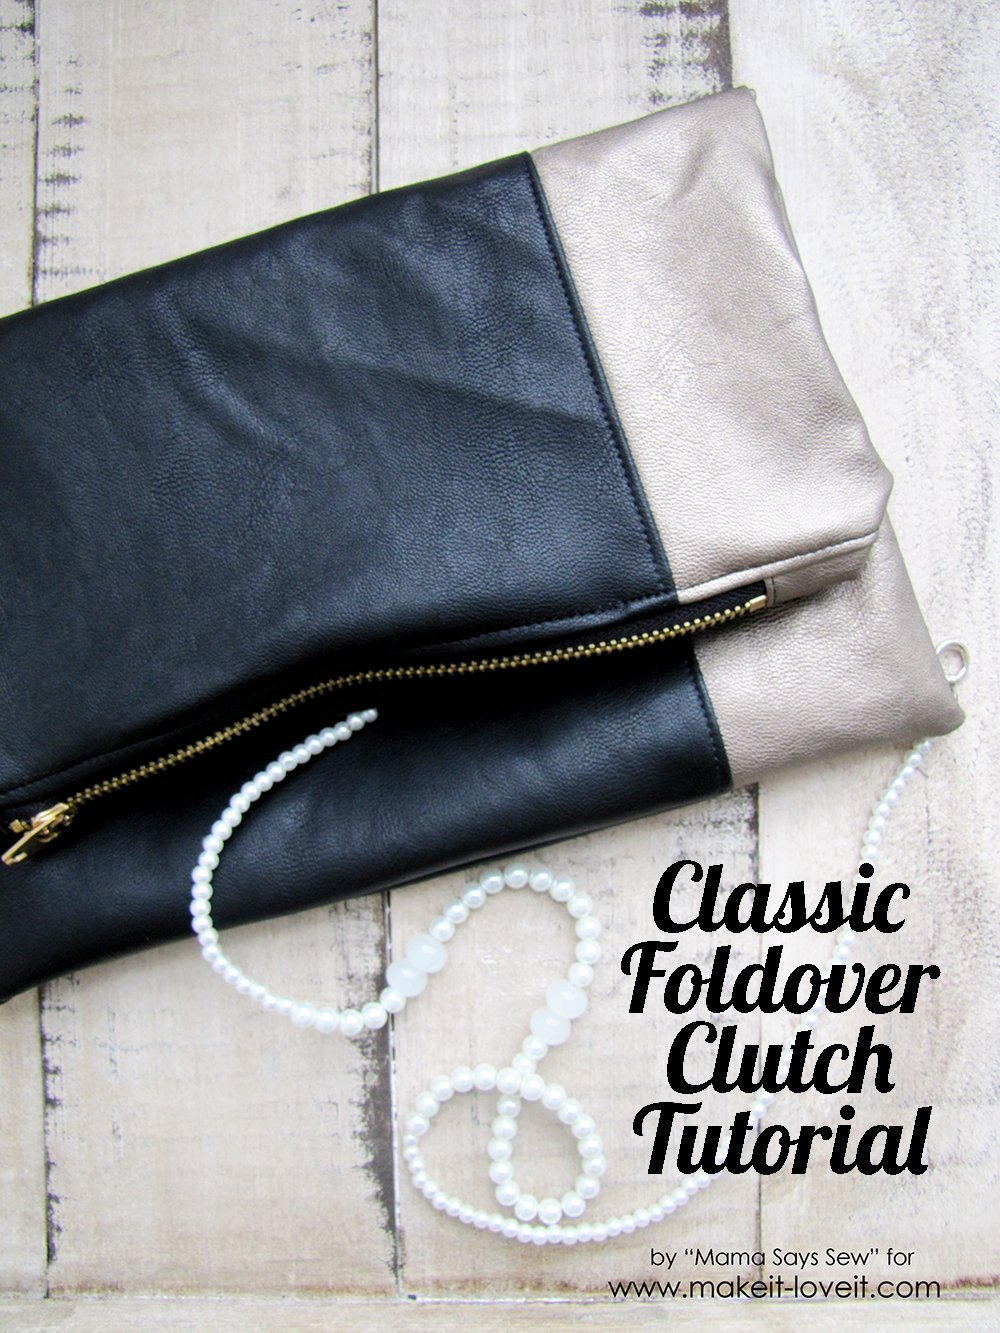 Classic Leather Foldover Clutch Tutorial